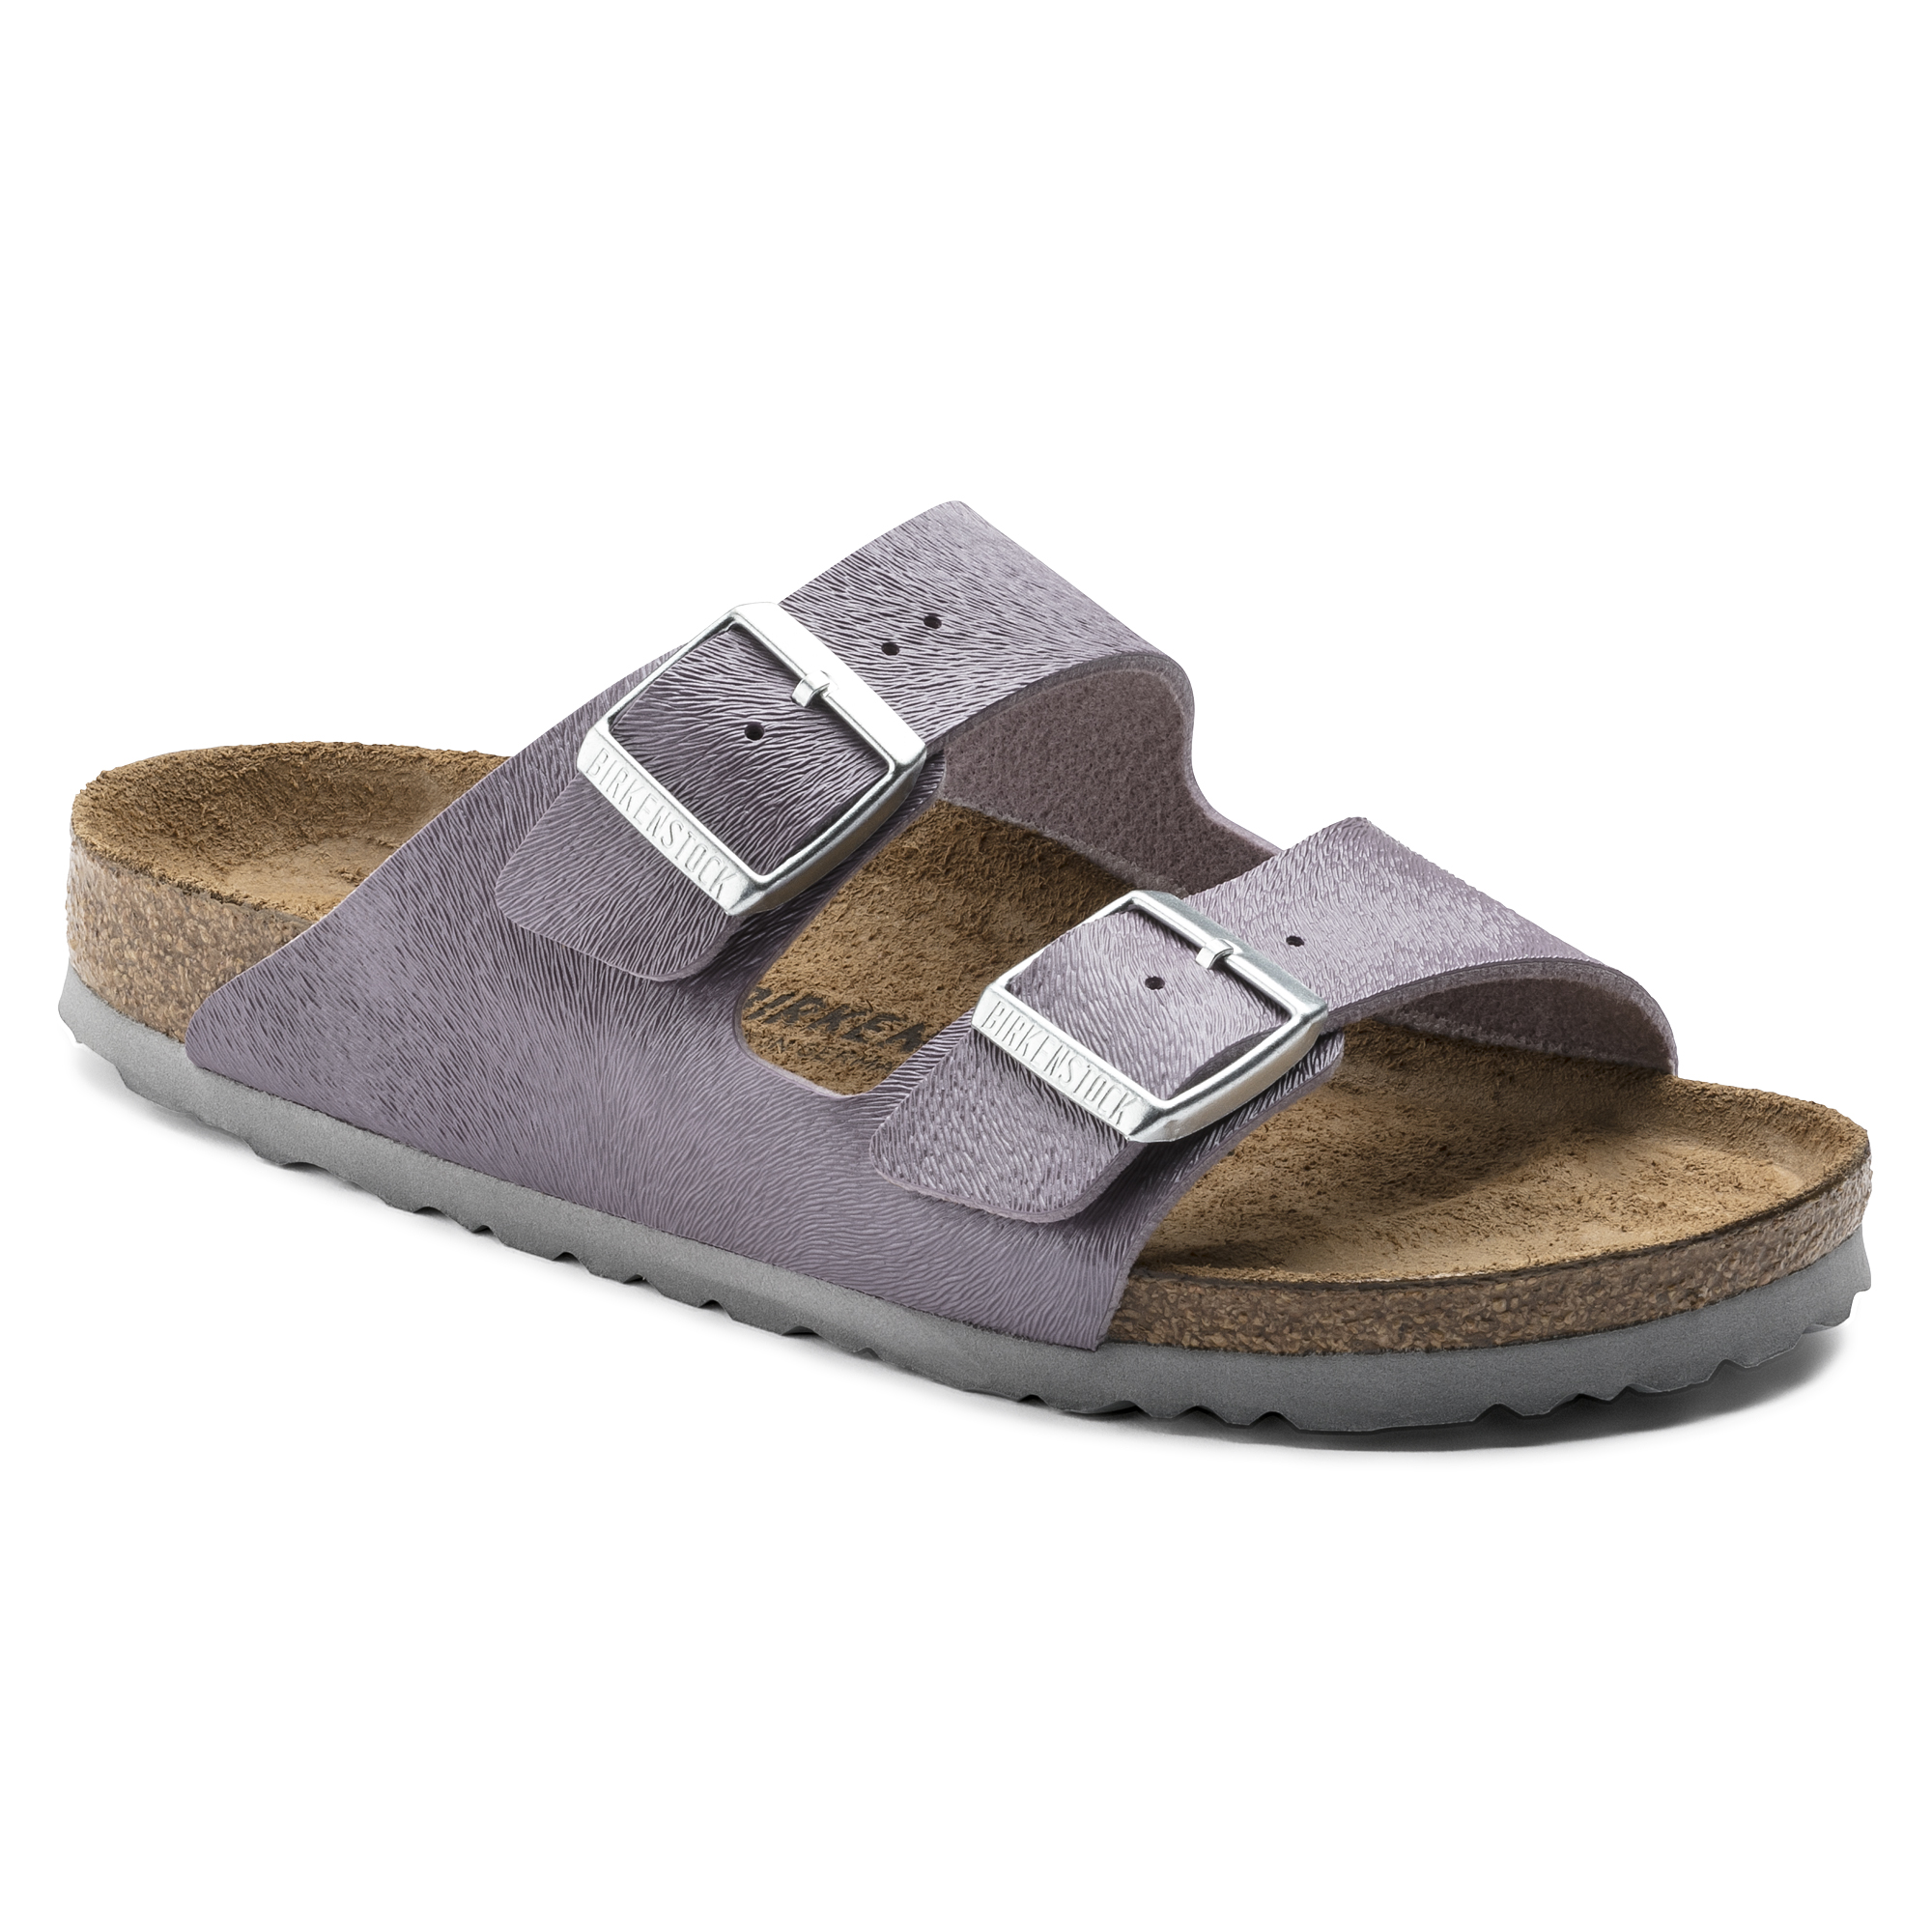 Arizona Birko Flor Animal Fascination Purple | BIRKENSTOCK